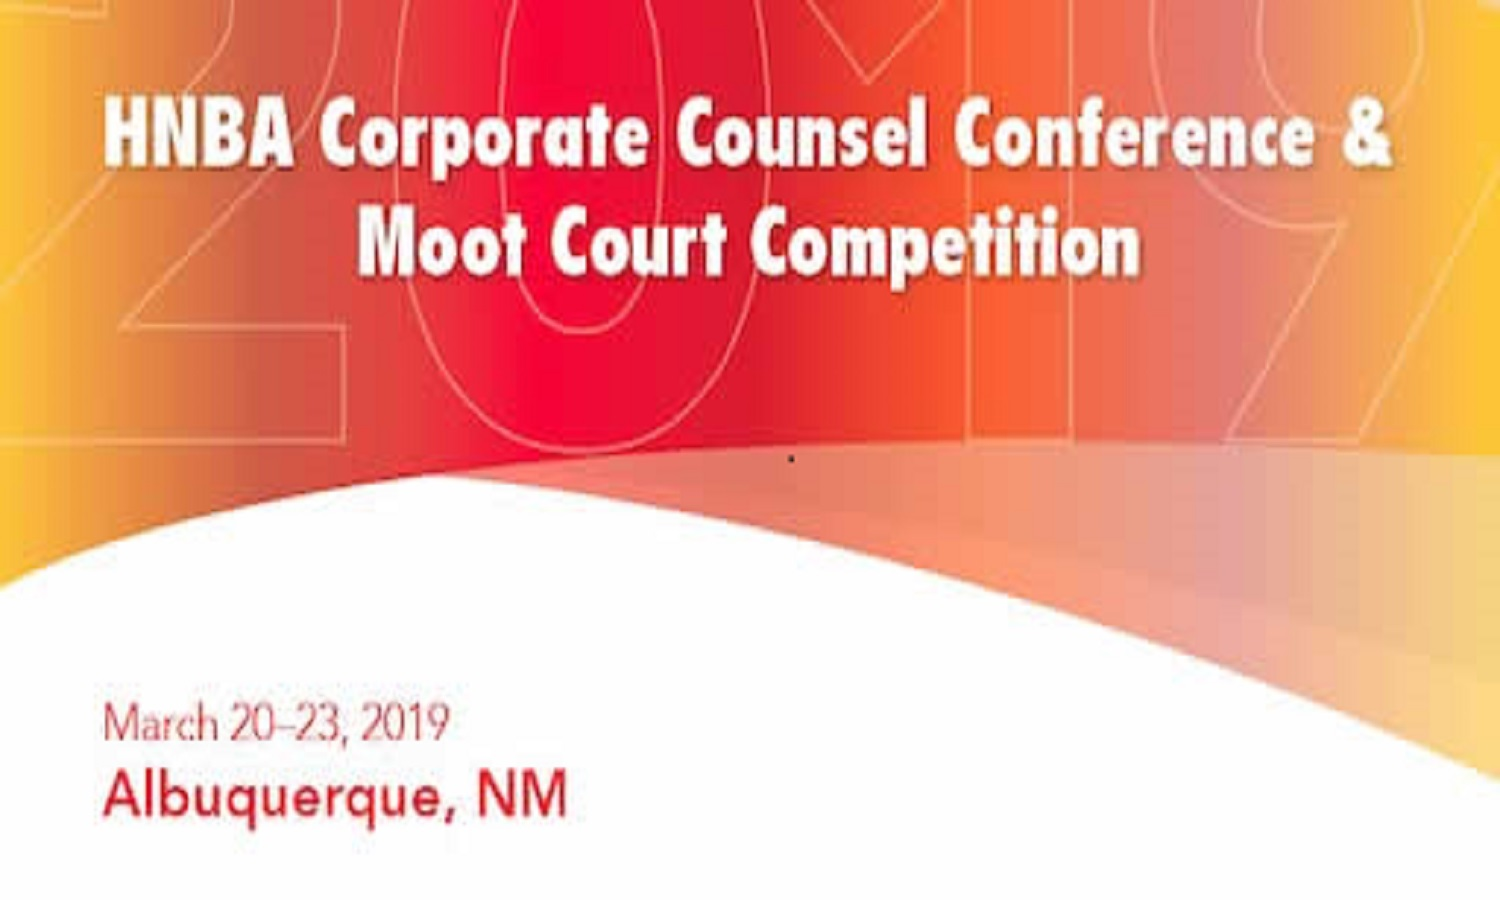 HNBA 2019 Corporate Counsel Conference – Mar. 20-23